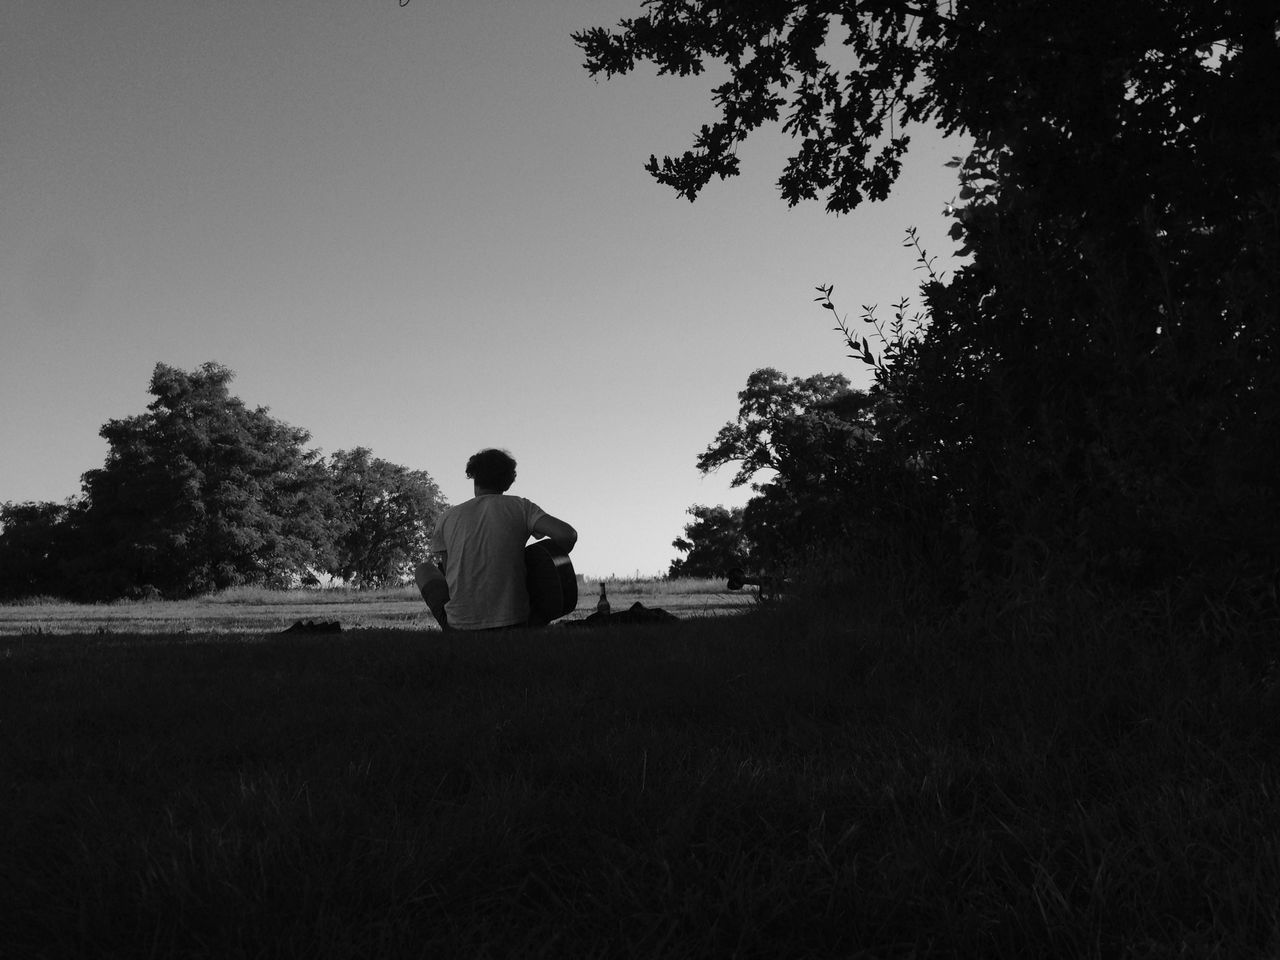 Berlin Photography One Person Real People Tranquil Scene Tree Rear View Sky Guitar Nature Airport Tempelhofer Feld